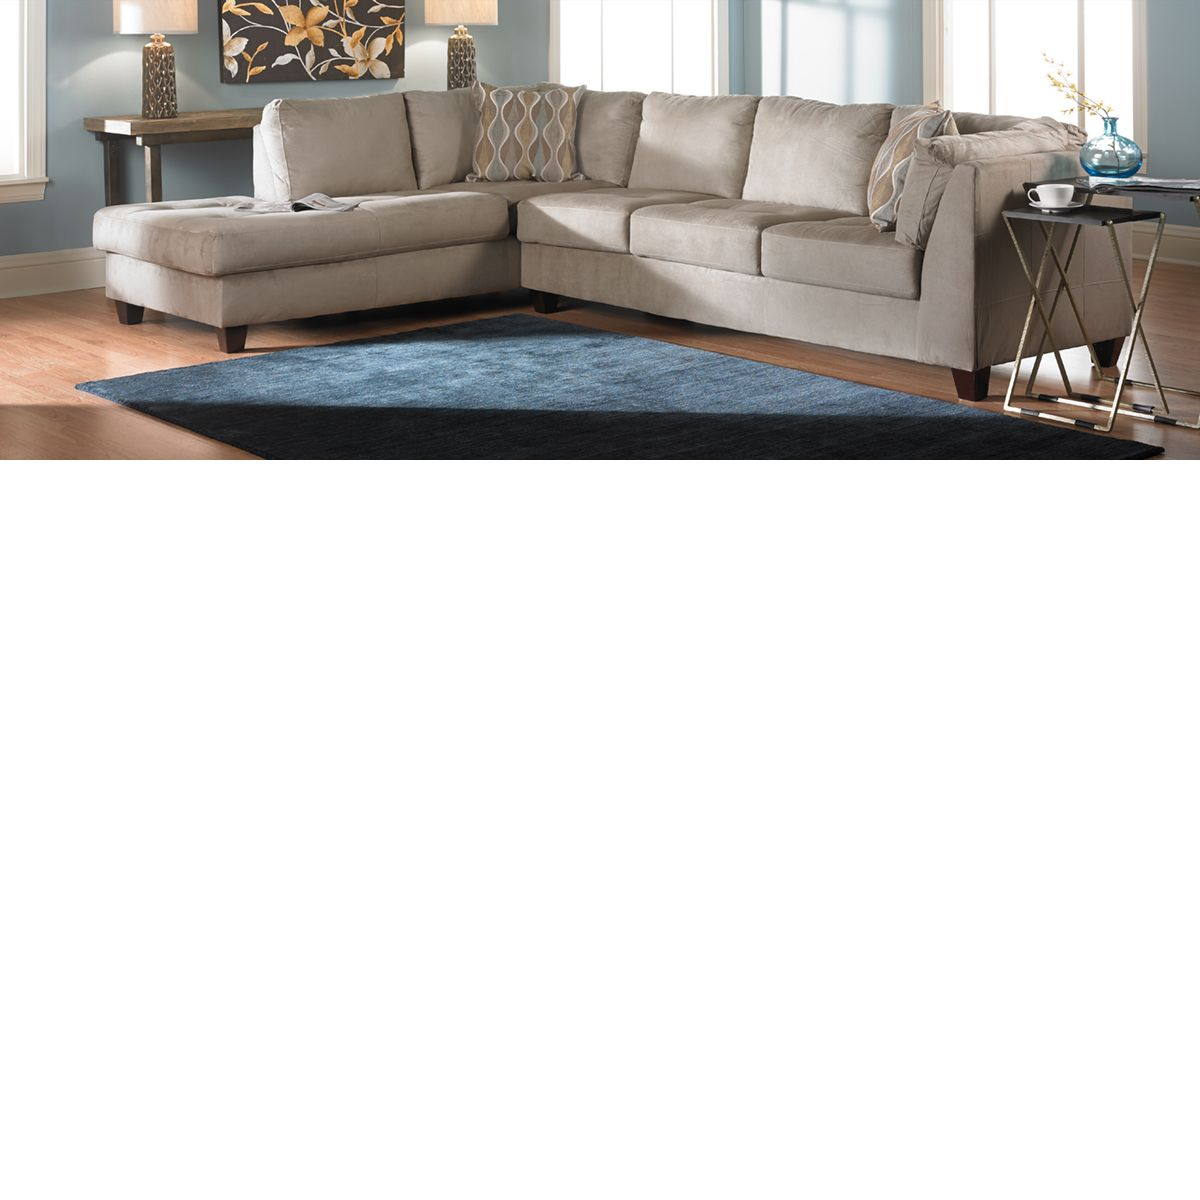 Sofa Dreams Outlet The Dump Furniture Outlet Sectional Sofa For The Home In 2019